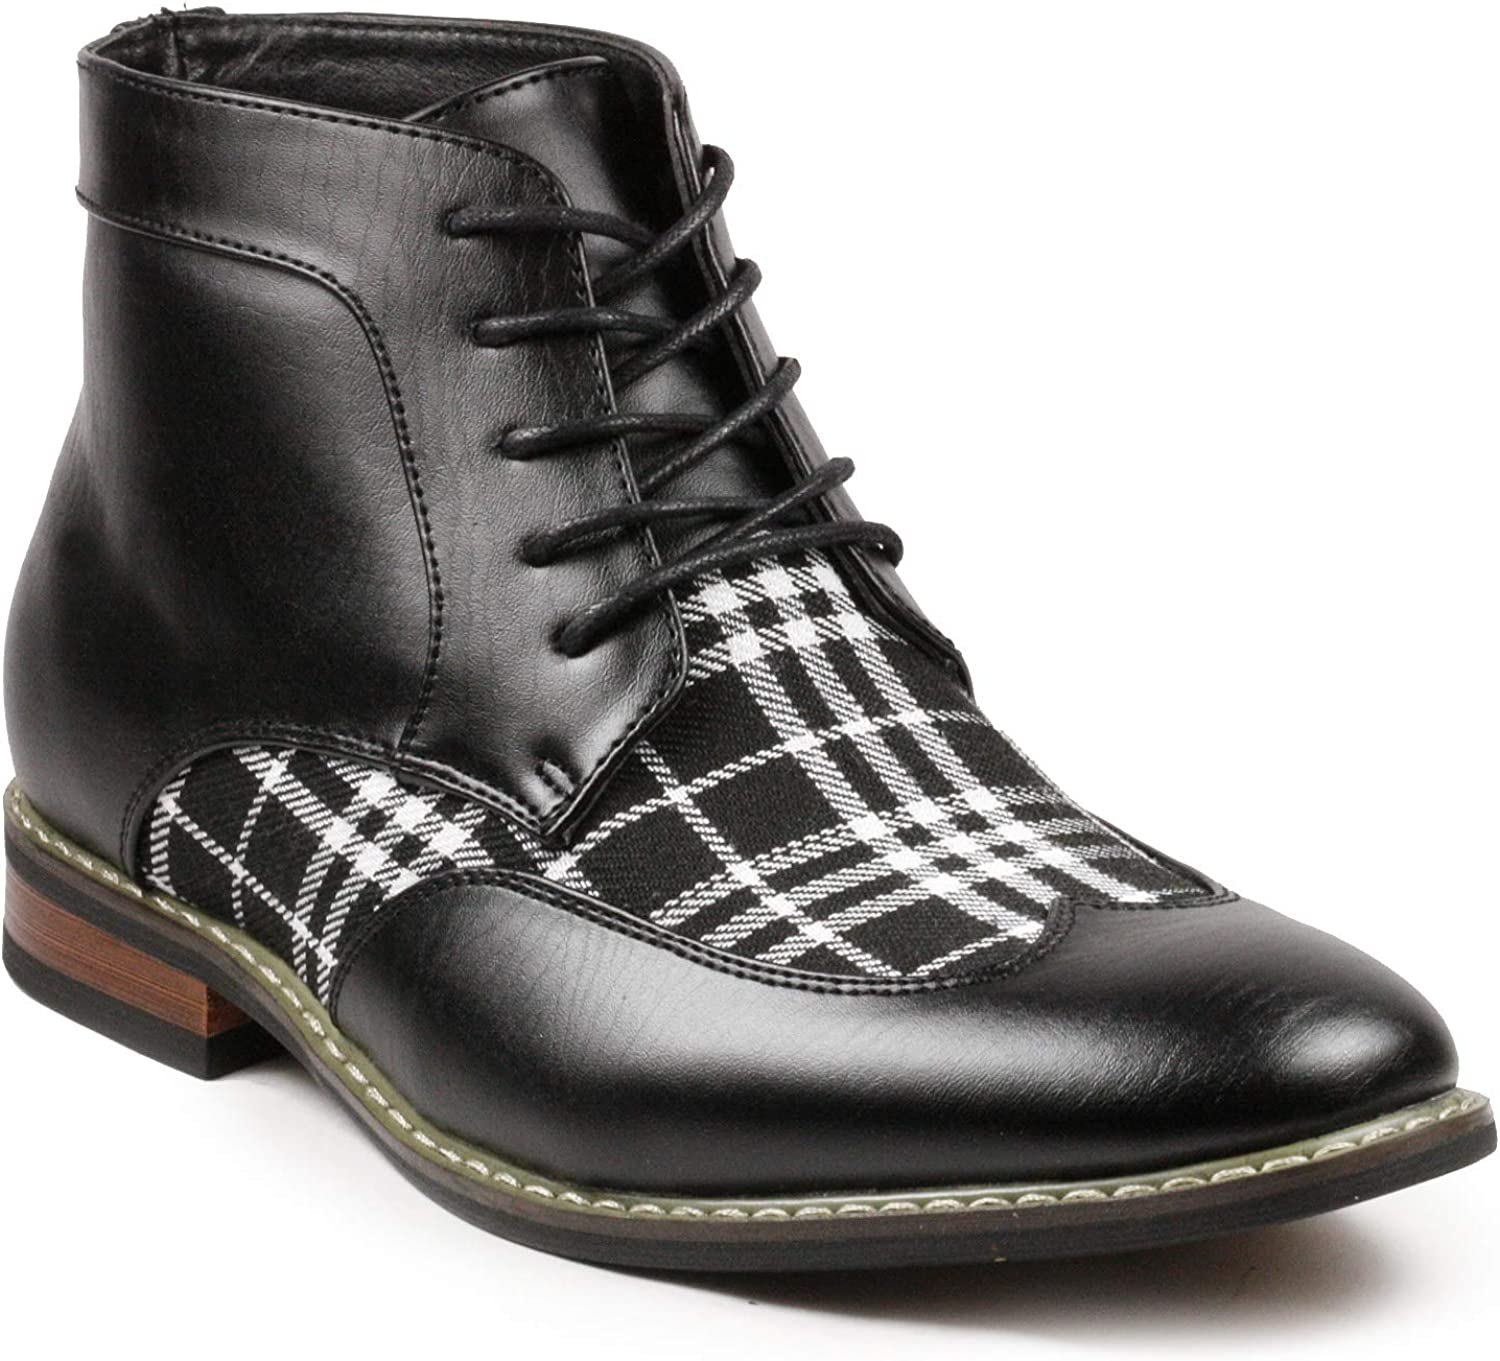 Metrocharm Alex-07 Men's Plaid Lace Up Wing Tip Classic Oxford Boot